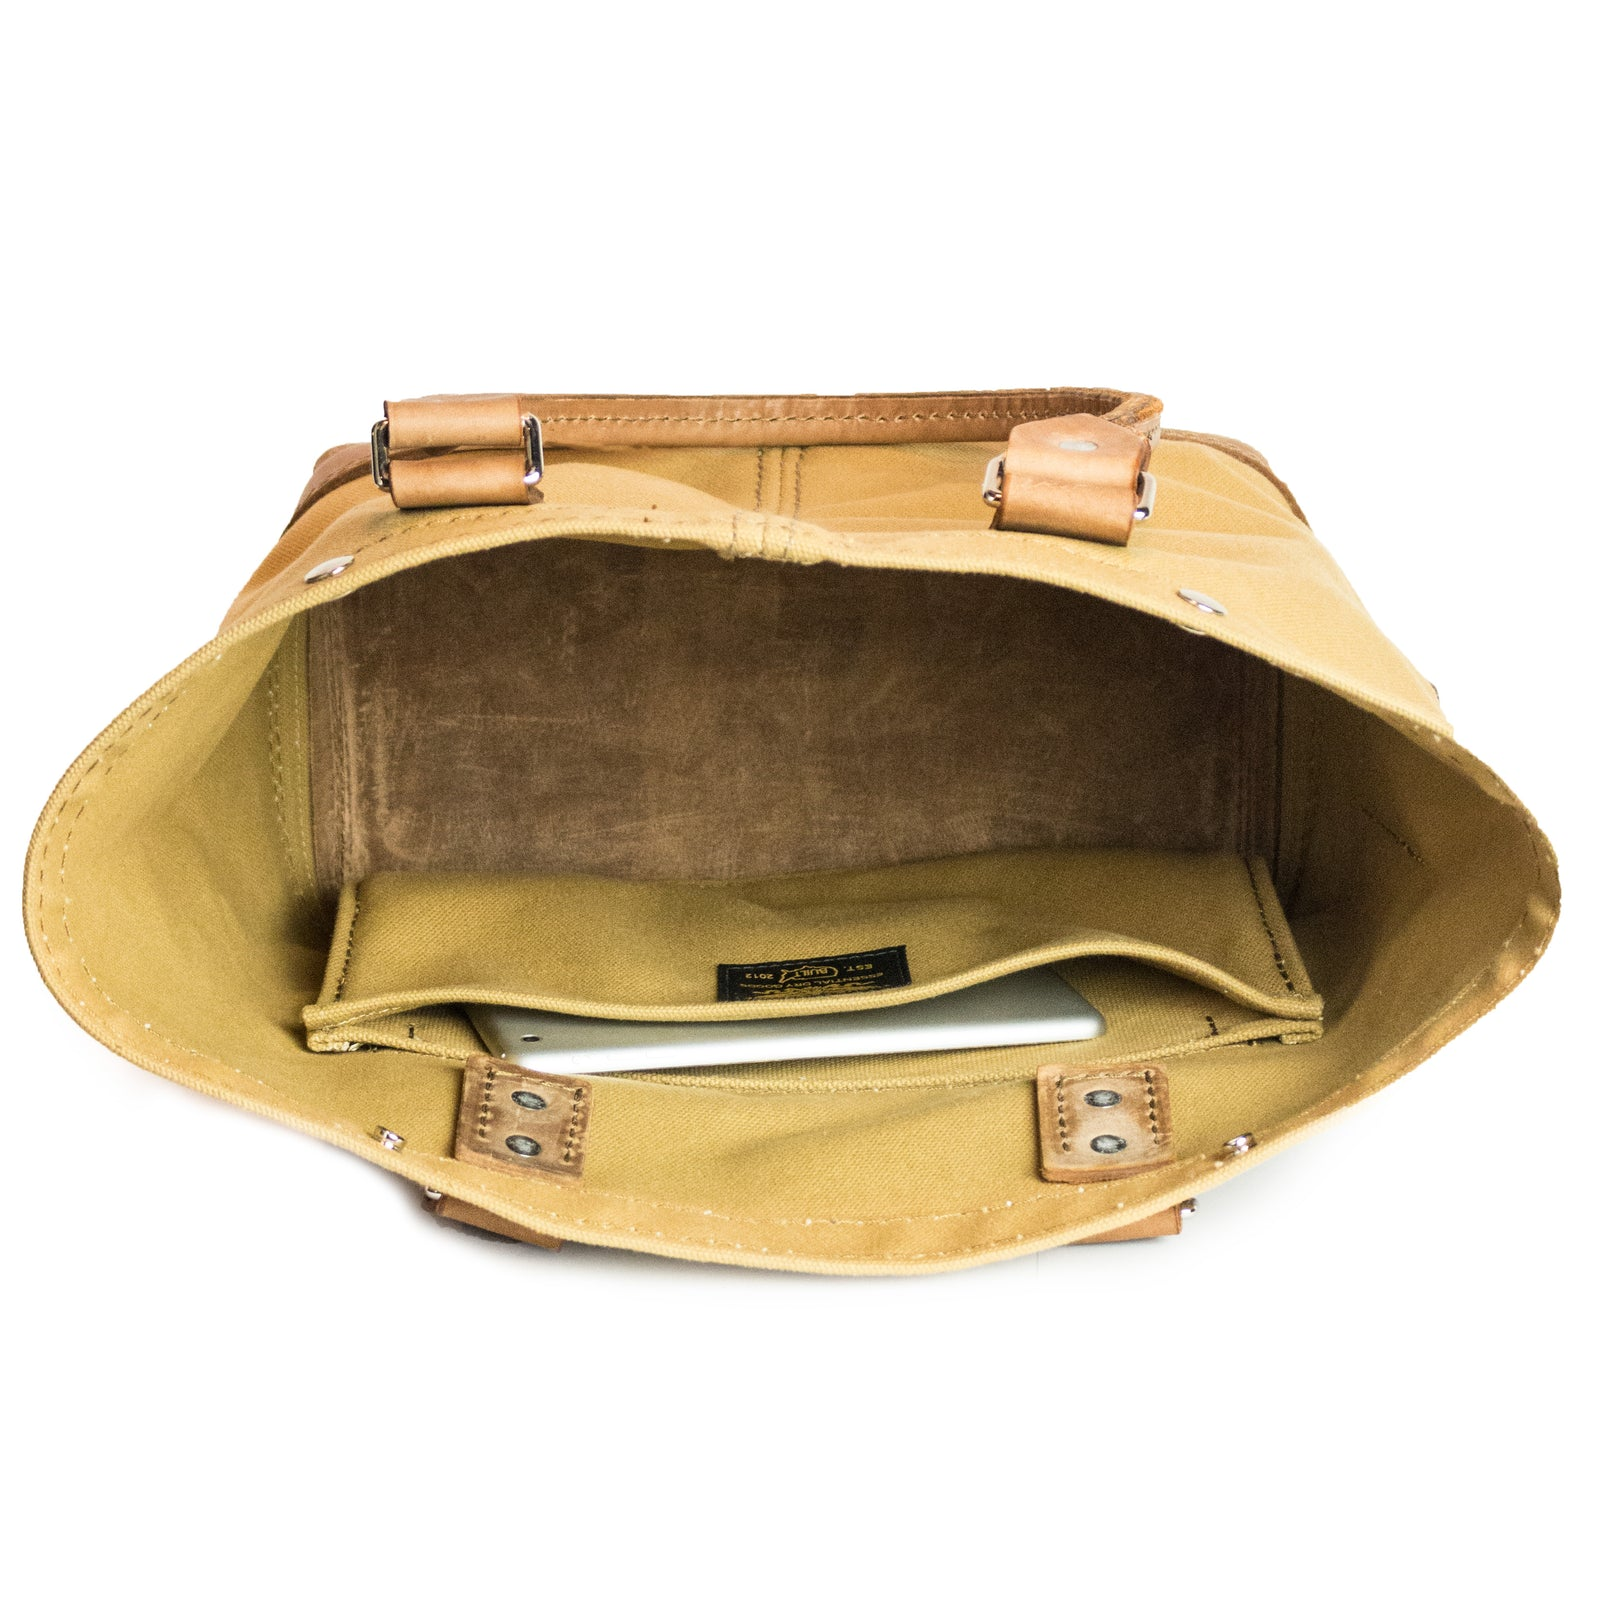 Hoist Tote | Light Brown on Khaki | Nickel Hardware